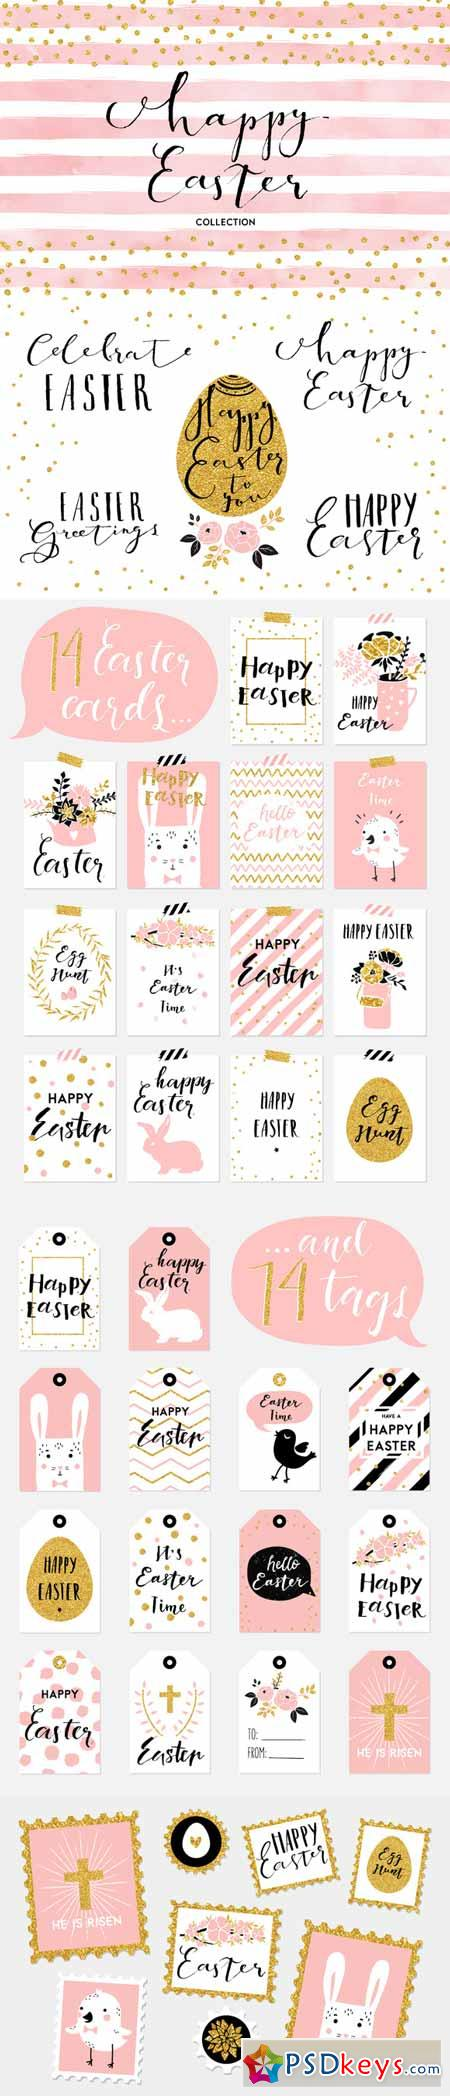 Happy Easter collection 589320